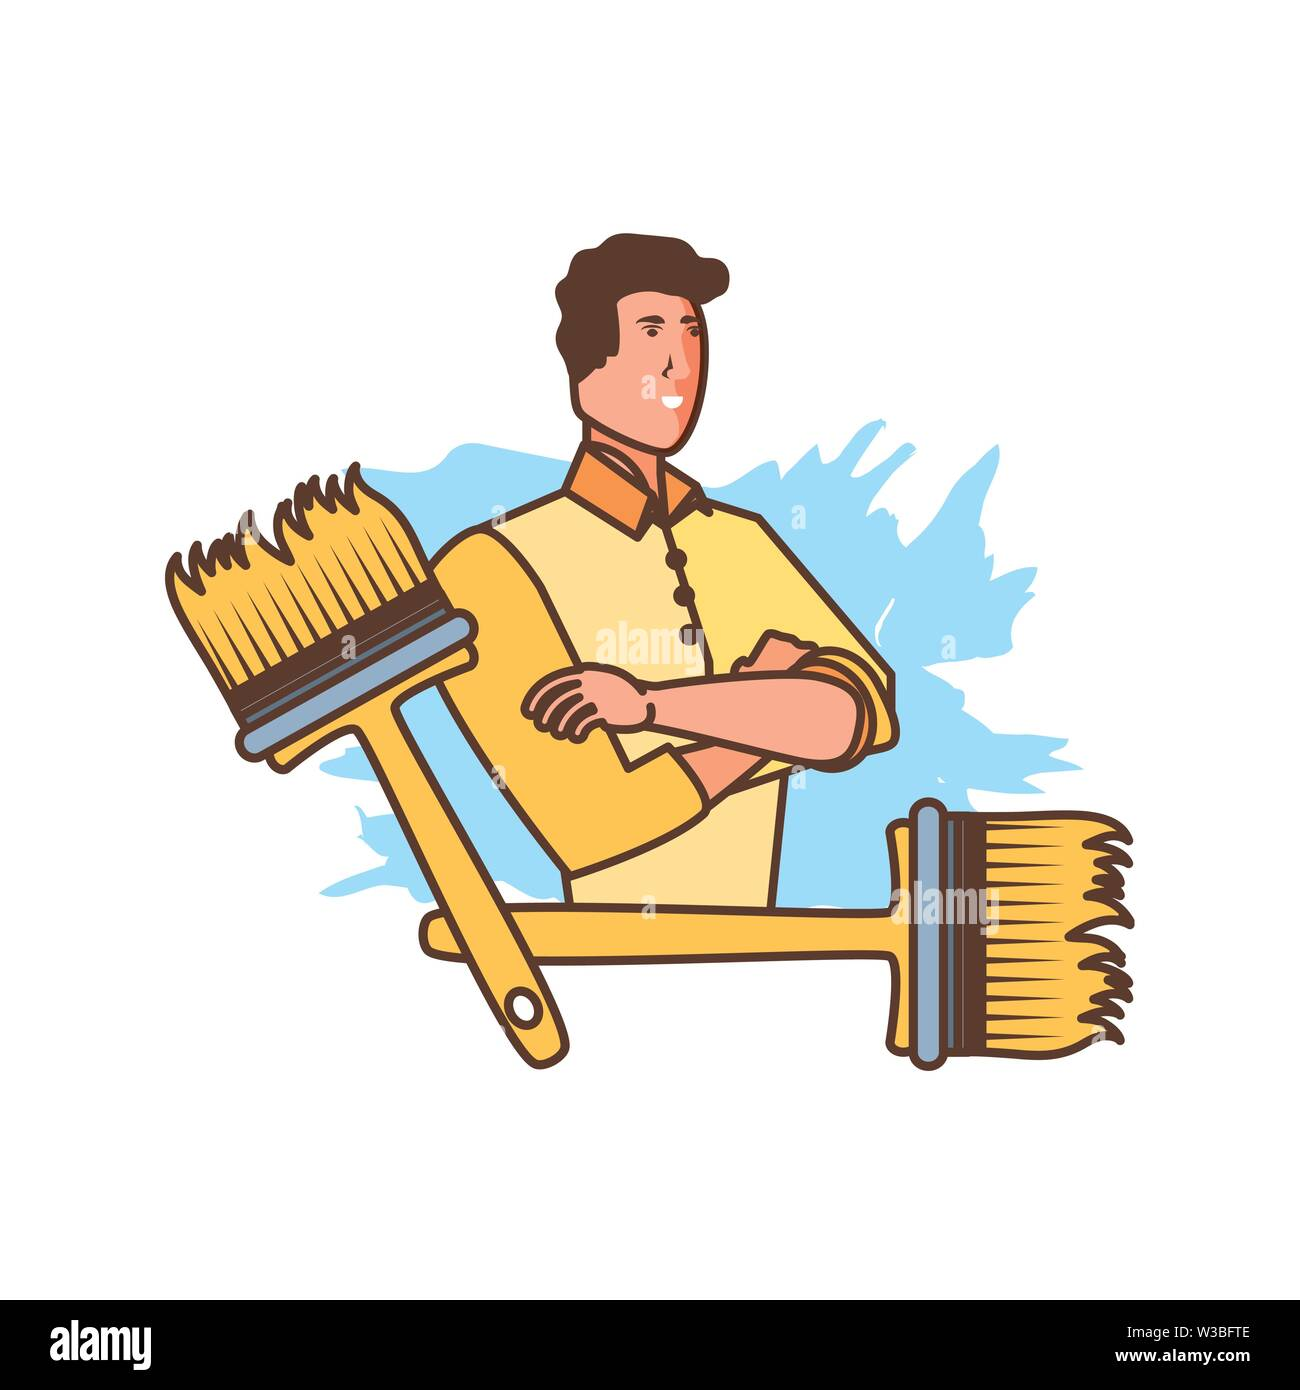 worker construction man with paint brushes vector illustration design - Stock Image